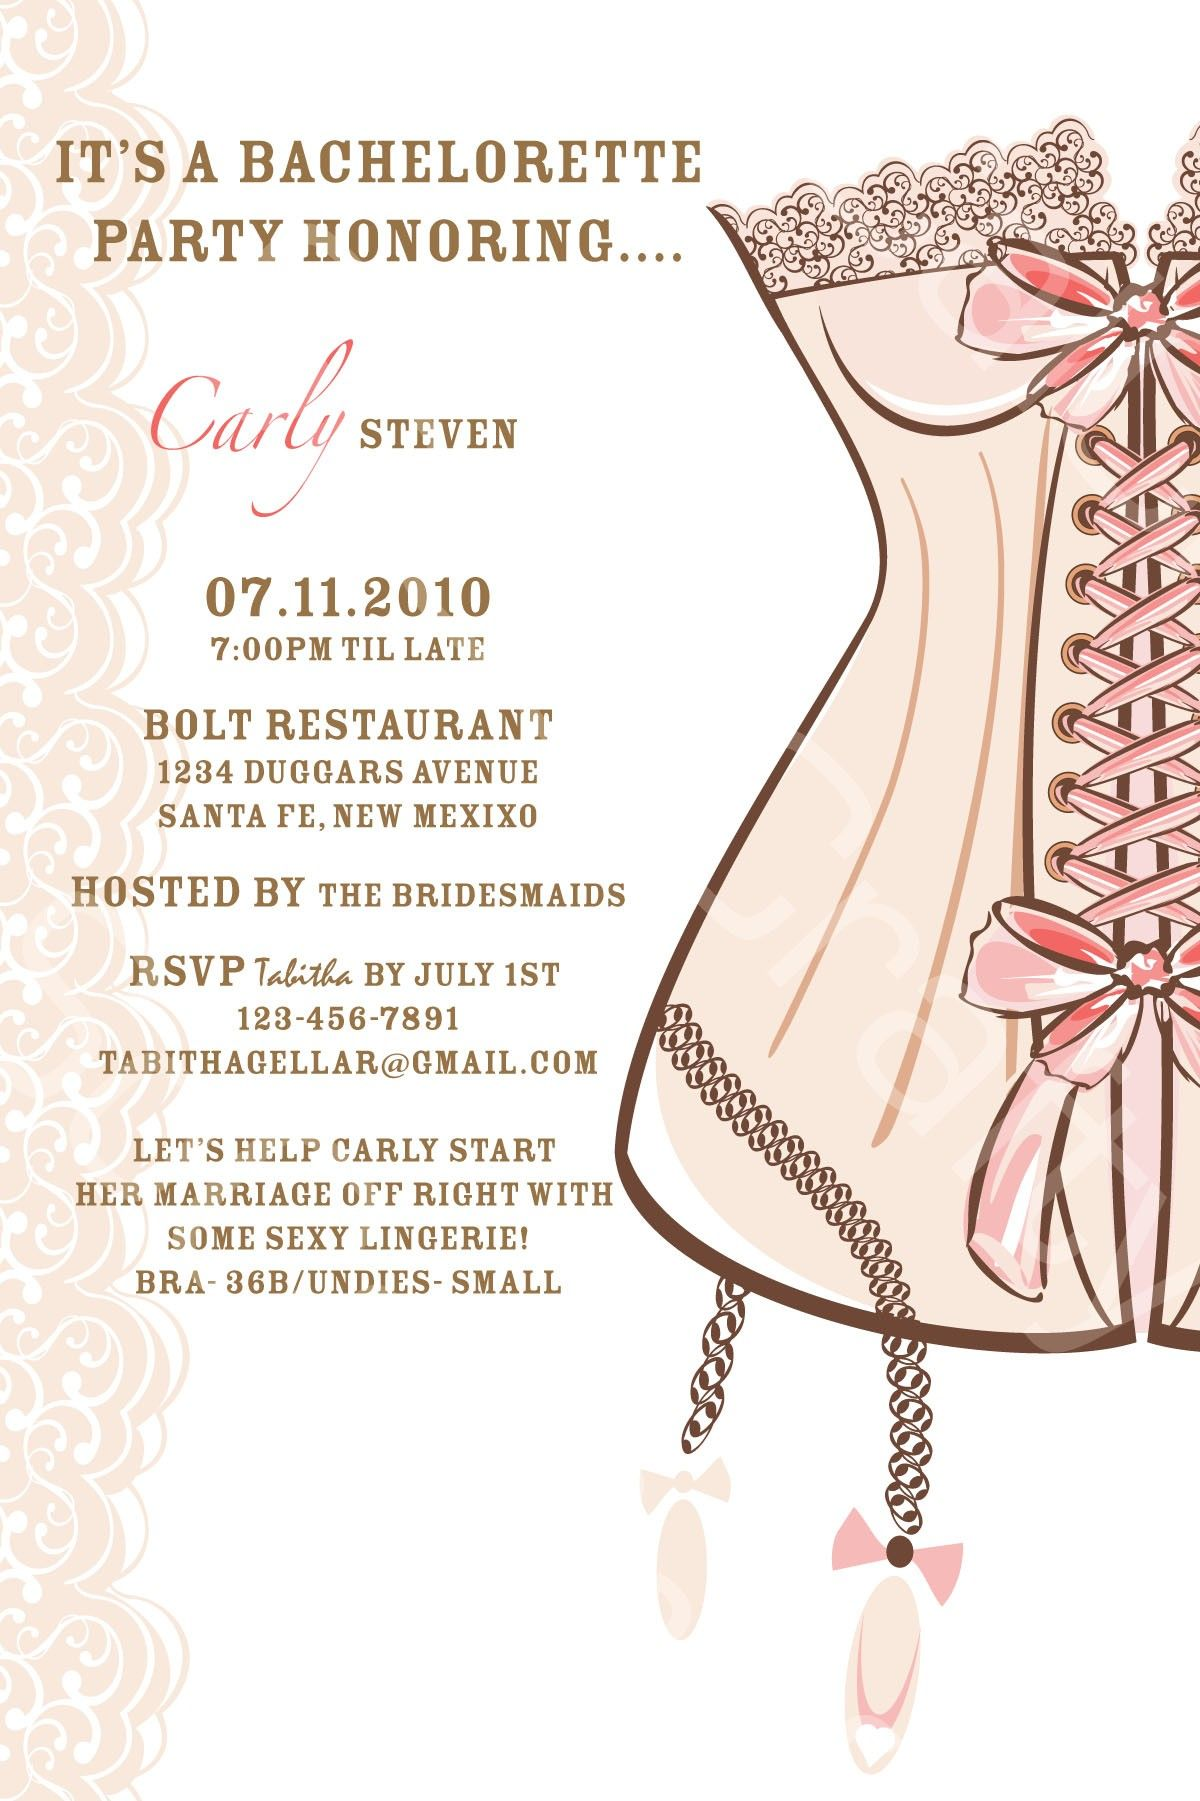 Bachelorette Party Invitation Free Download Naughty | DIY - Free ...